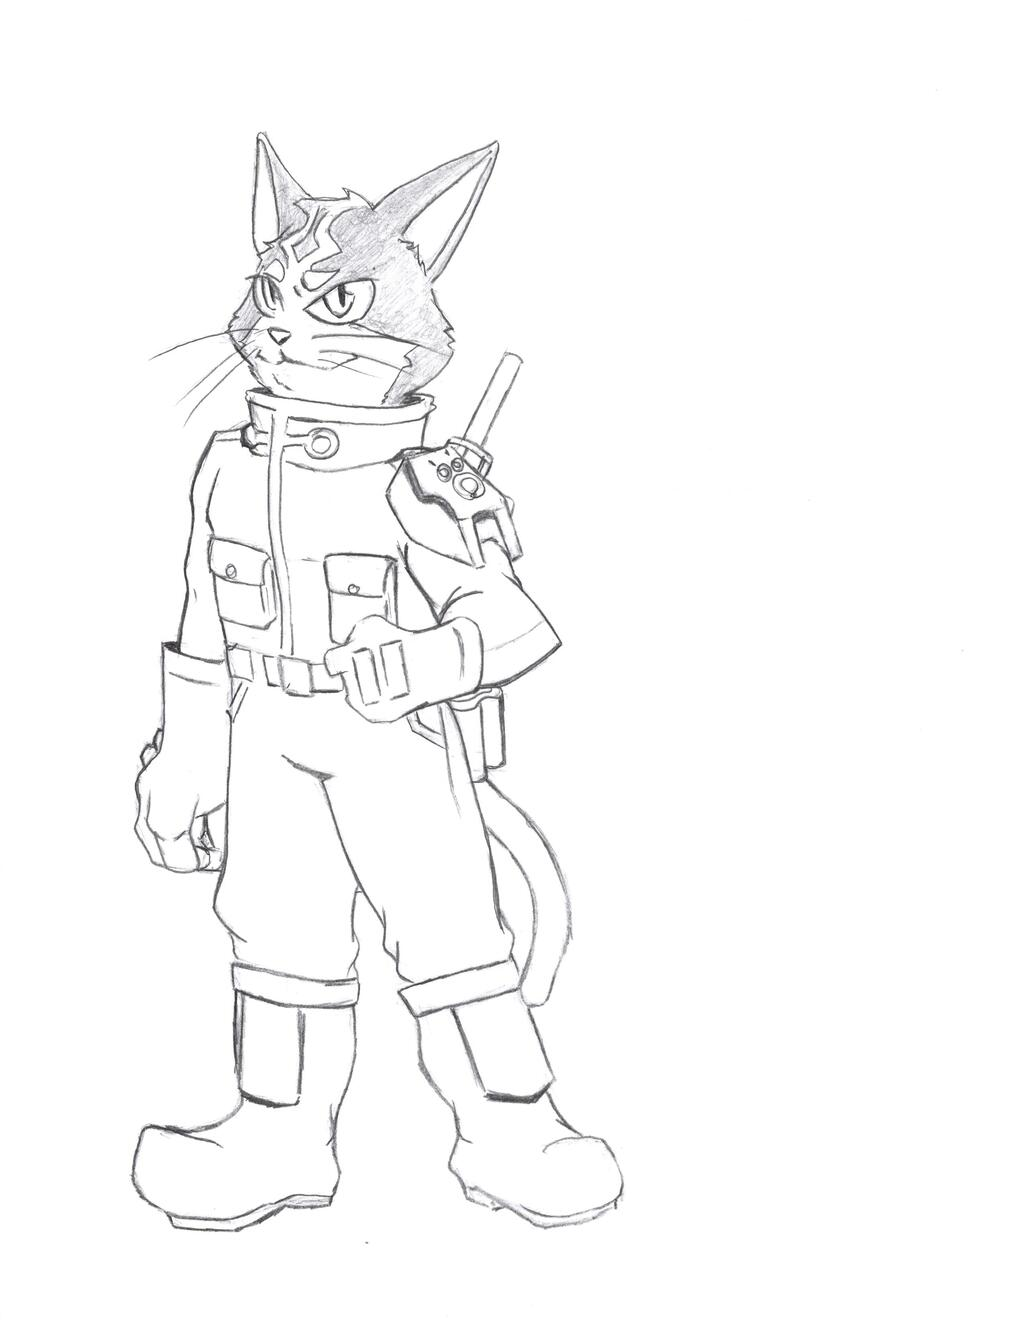 SpaceCats Starfox Edition